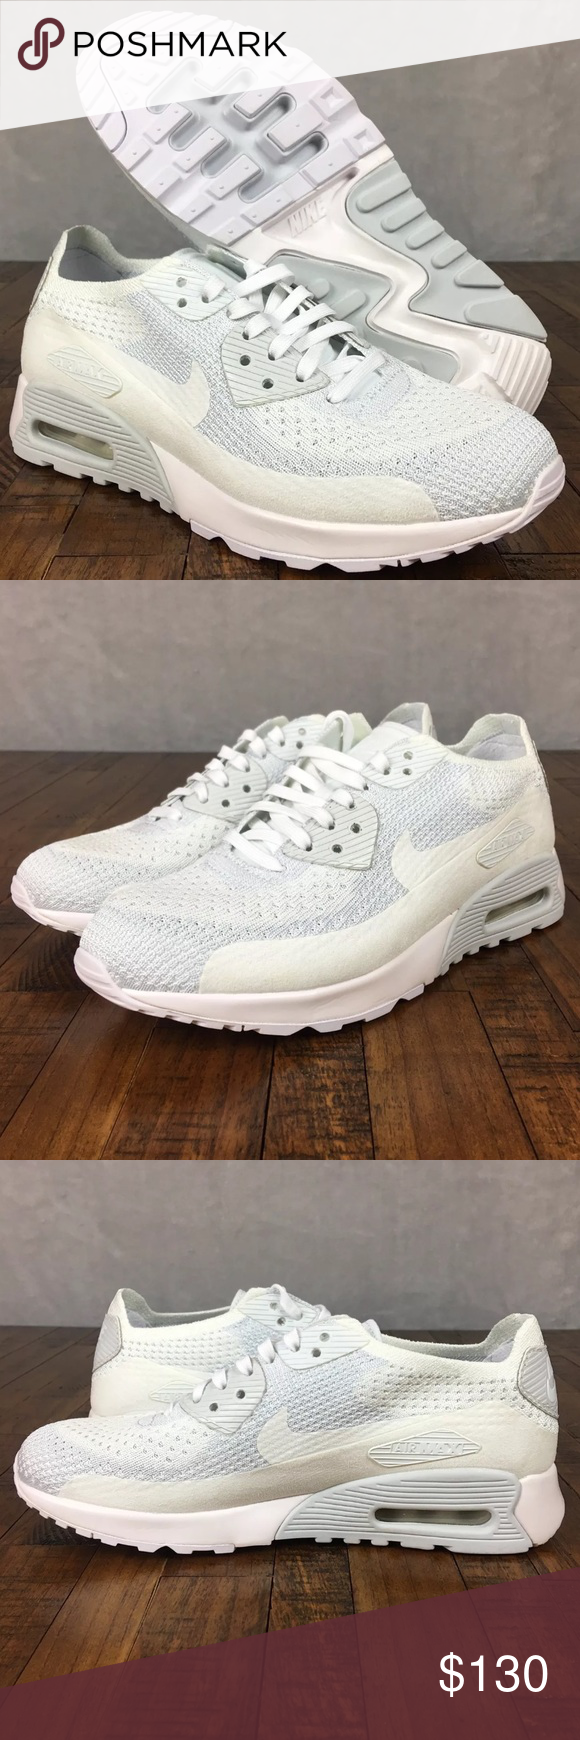 NEW Nike Air Max 90 Ultra 2.0 Flyknit Sneakers NIKE AIR MAX